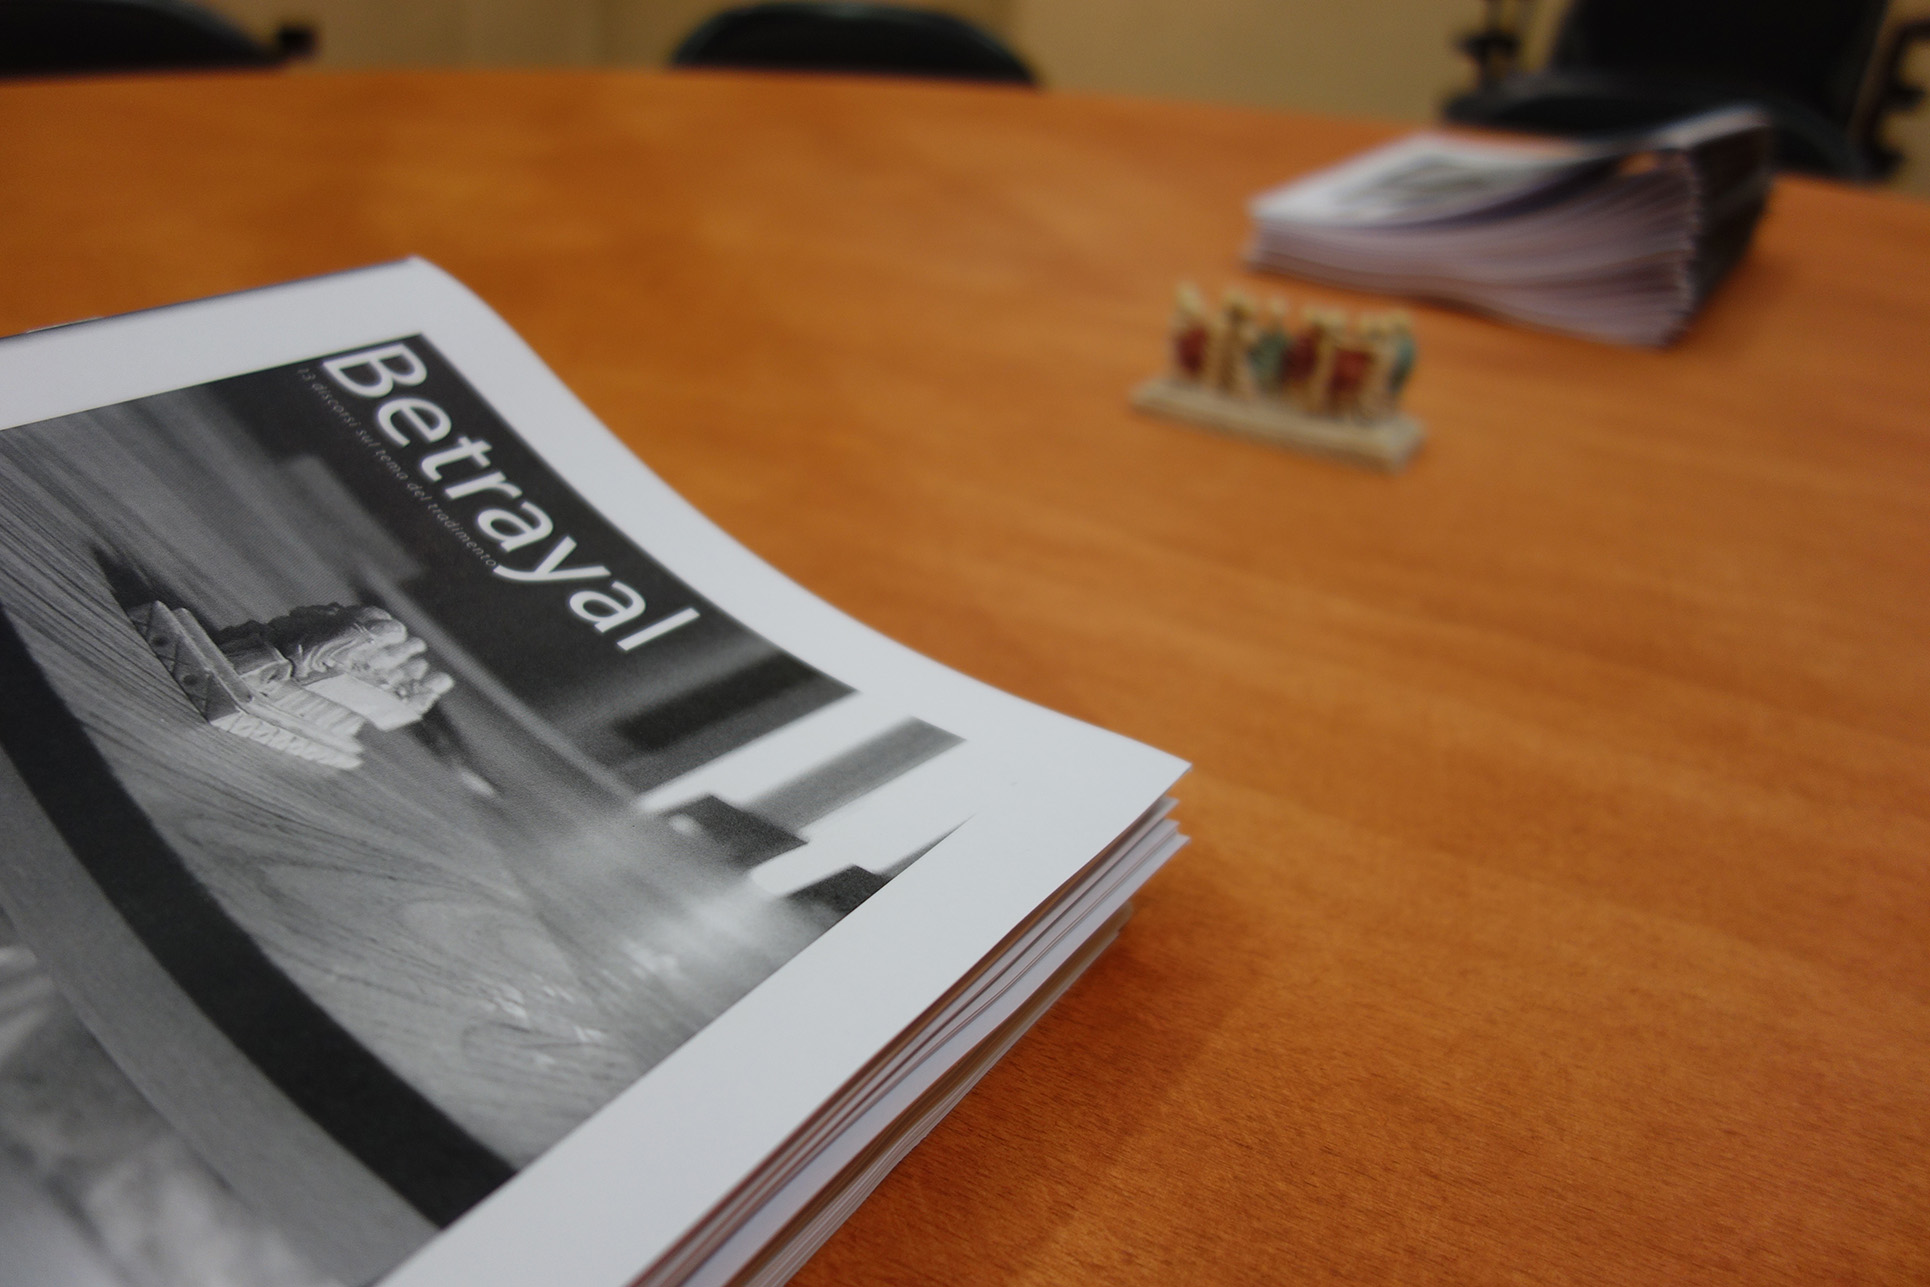 Installation detail with publication of the 13 interviews by Postmediabooks